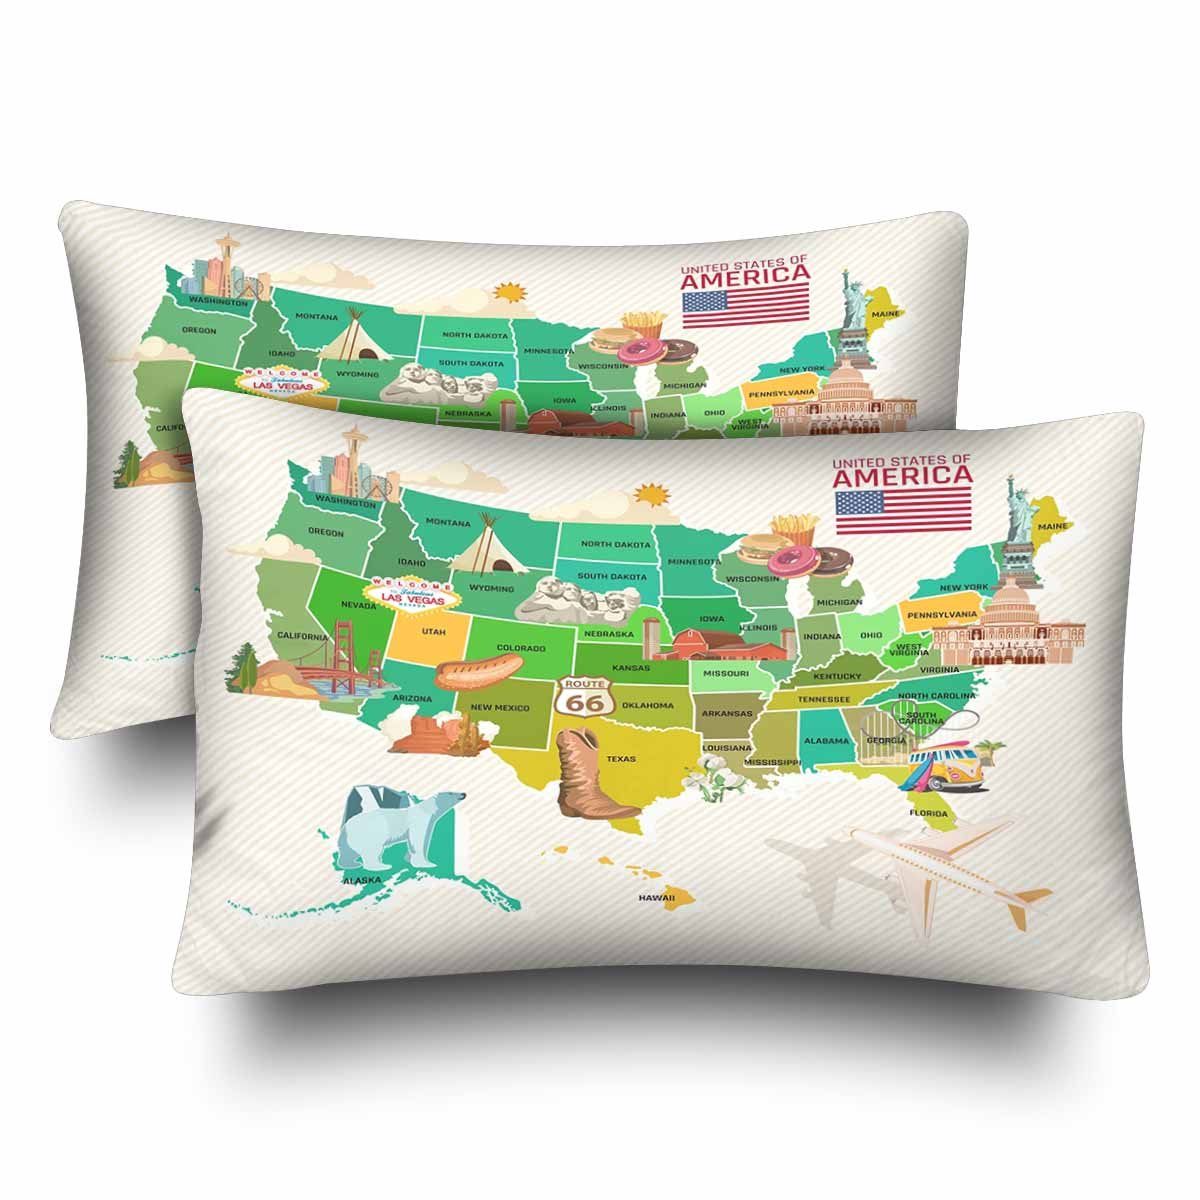 InterestPrint Welcome To USA United States of America Map Pillow Cases Pillowcase Standard Size 20x30 Set of 2, Travel Theme USA Map Rectangle Pillow Covers Protector for Home Bedding Decorative